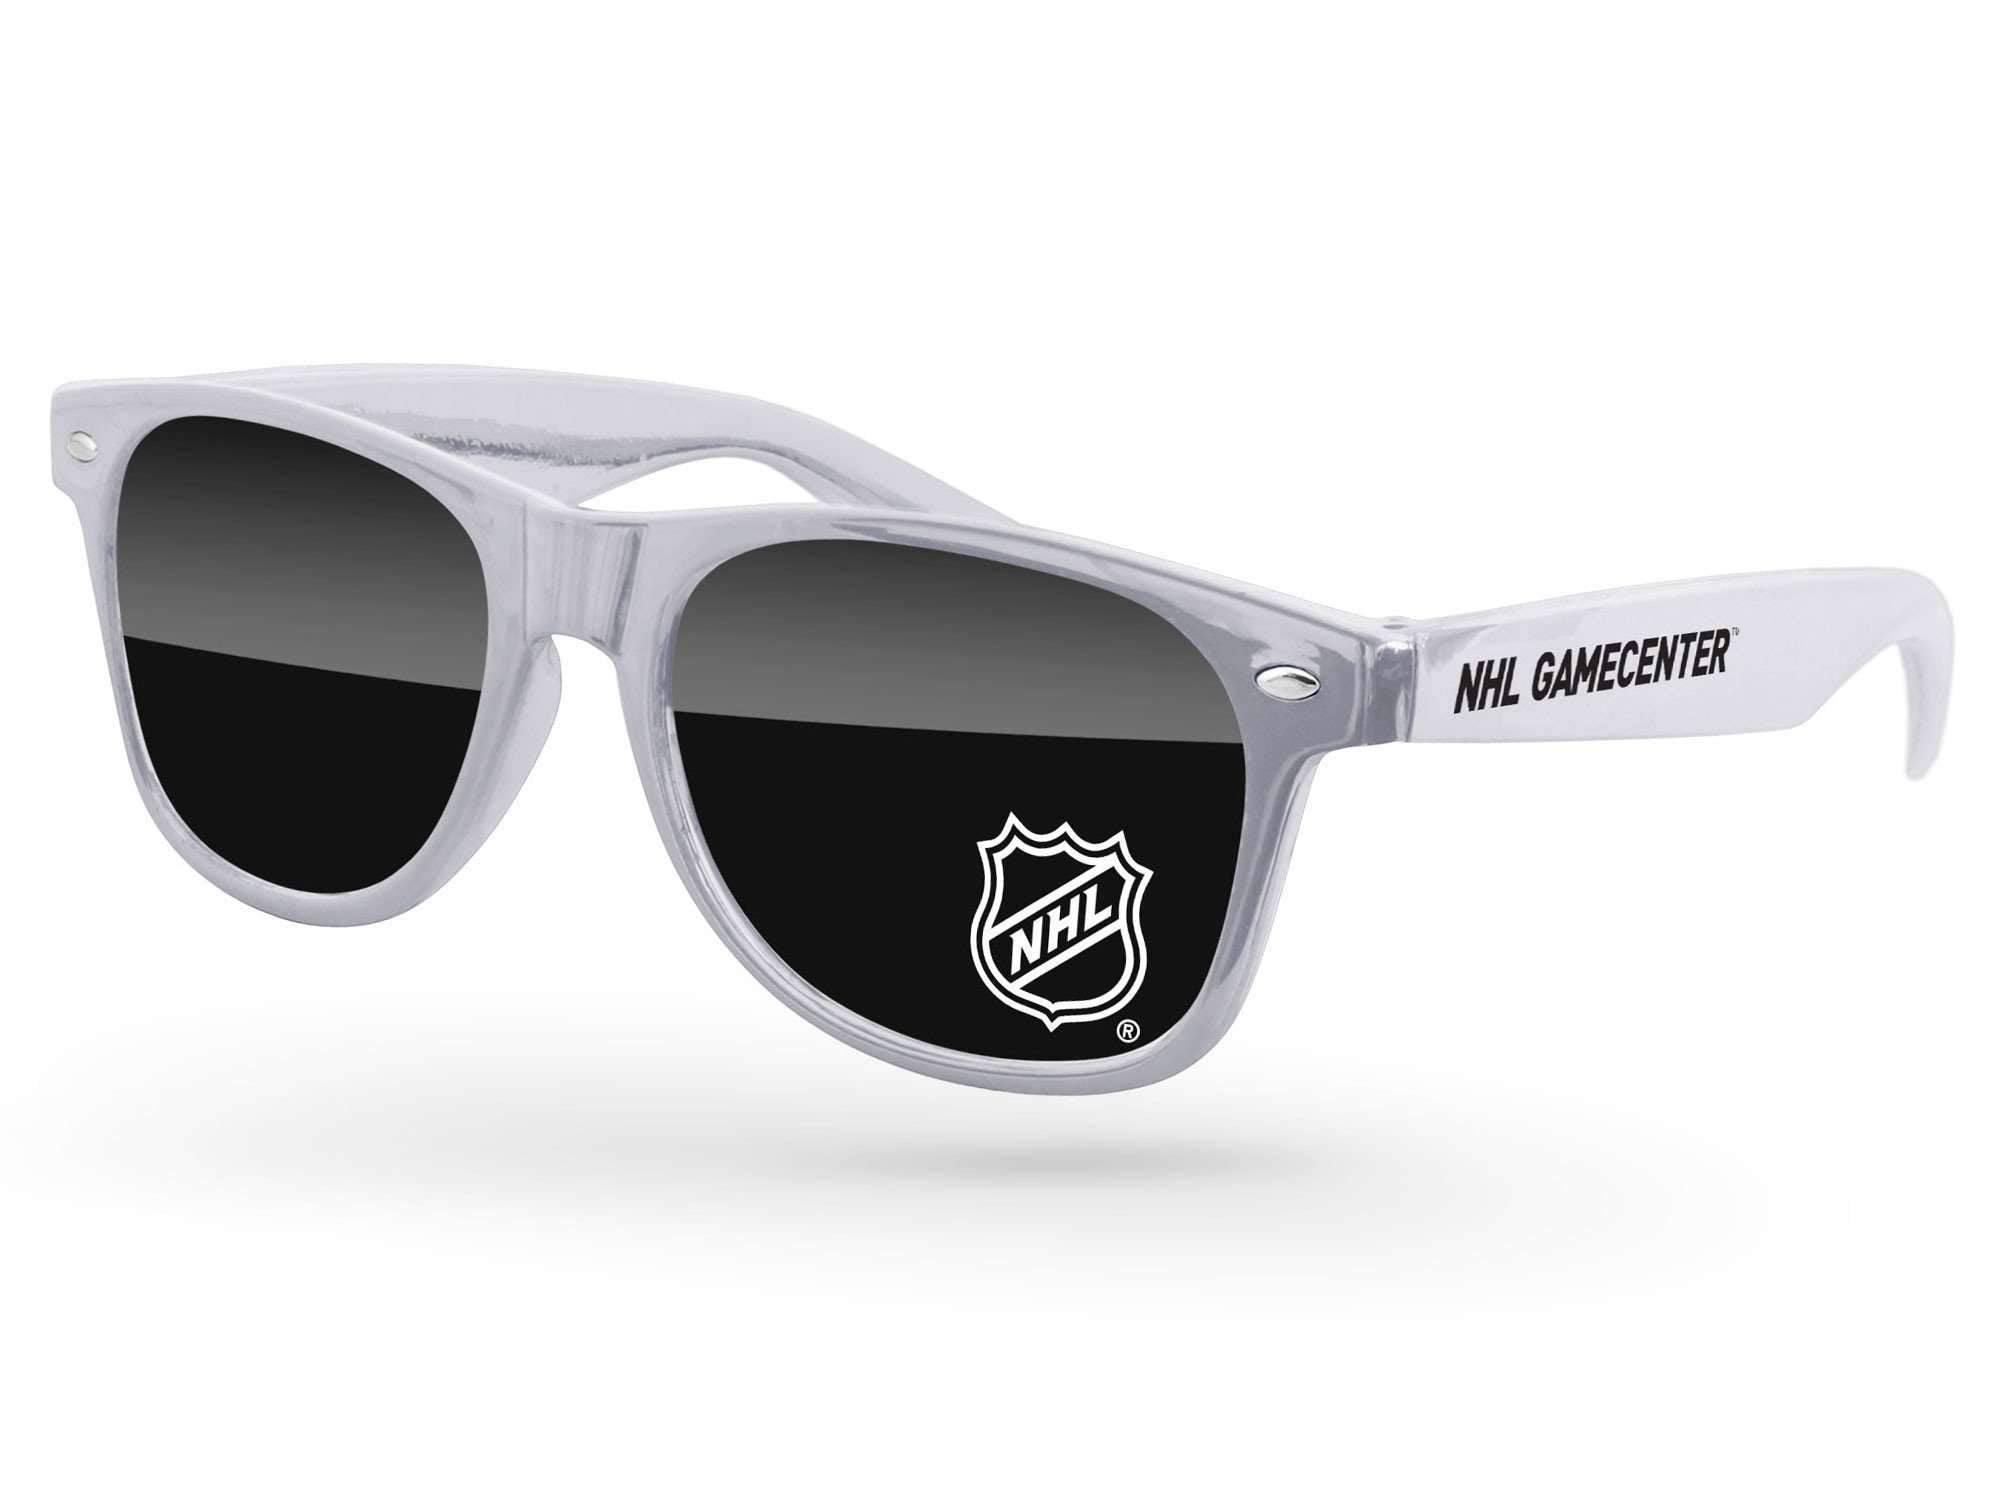 RD510-M - Metallic Retro Promotional Sunglasses w/ 1-color lens imprint & 1-color temple imprint